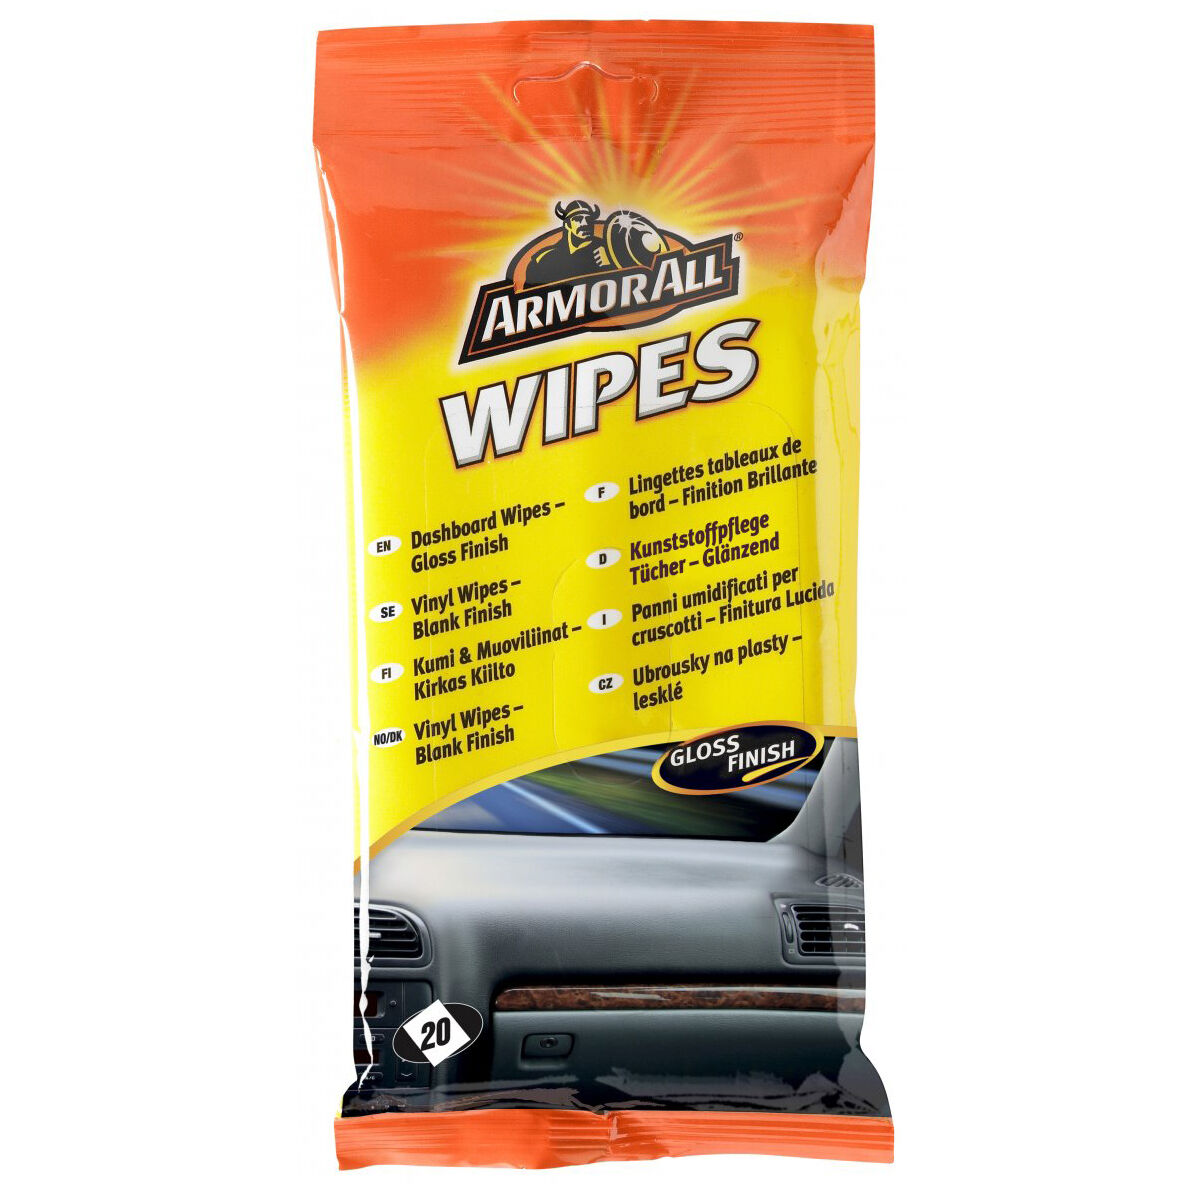 armorall car interior dashboard cleaner protector wipes 20 gloss finish picclick uk. Black Bedroom Furniture Sets. Home Design Ideas